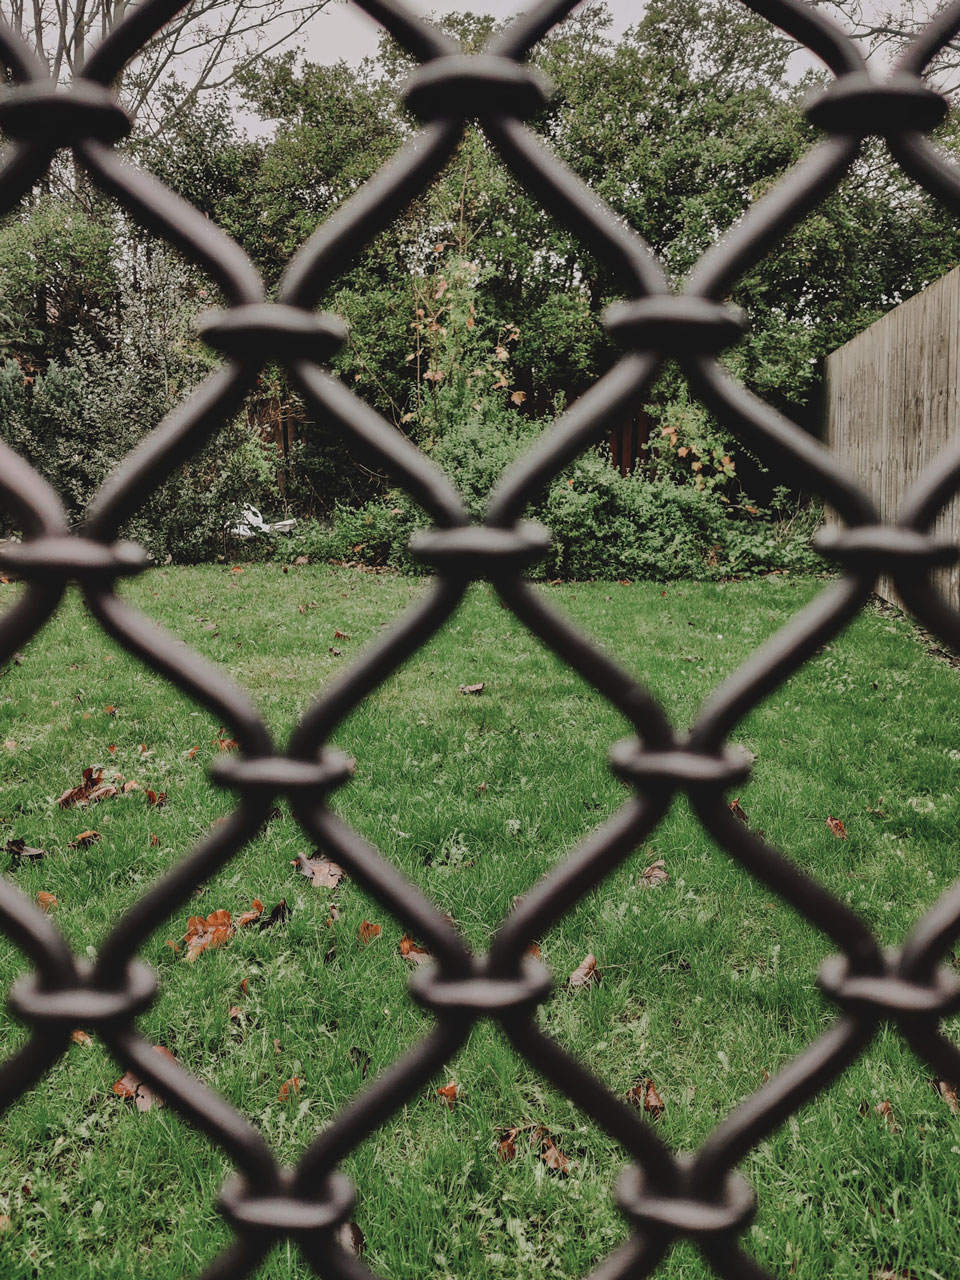 Focus on garden in distance with fence out of focus at forefront